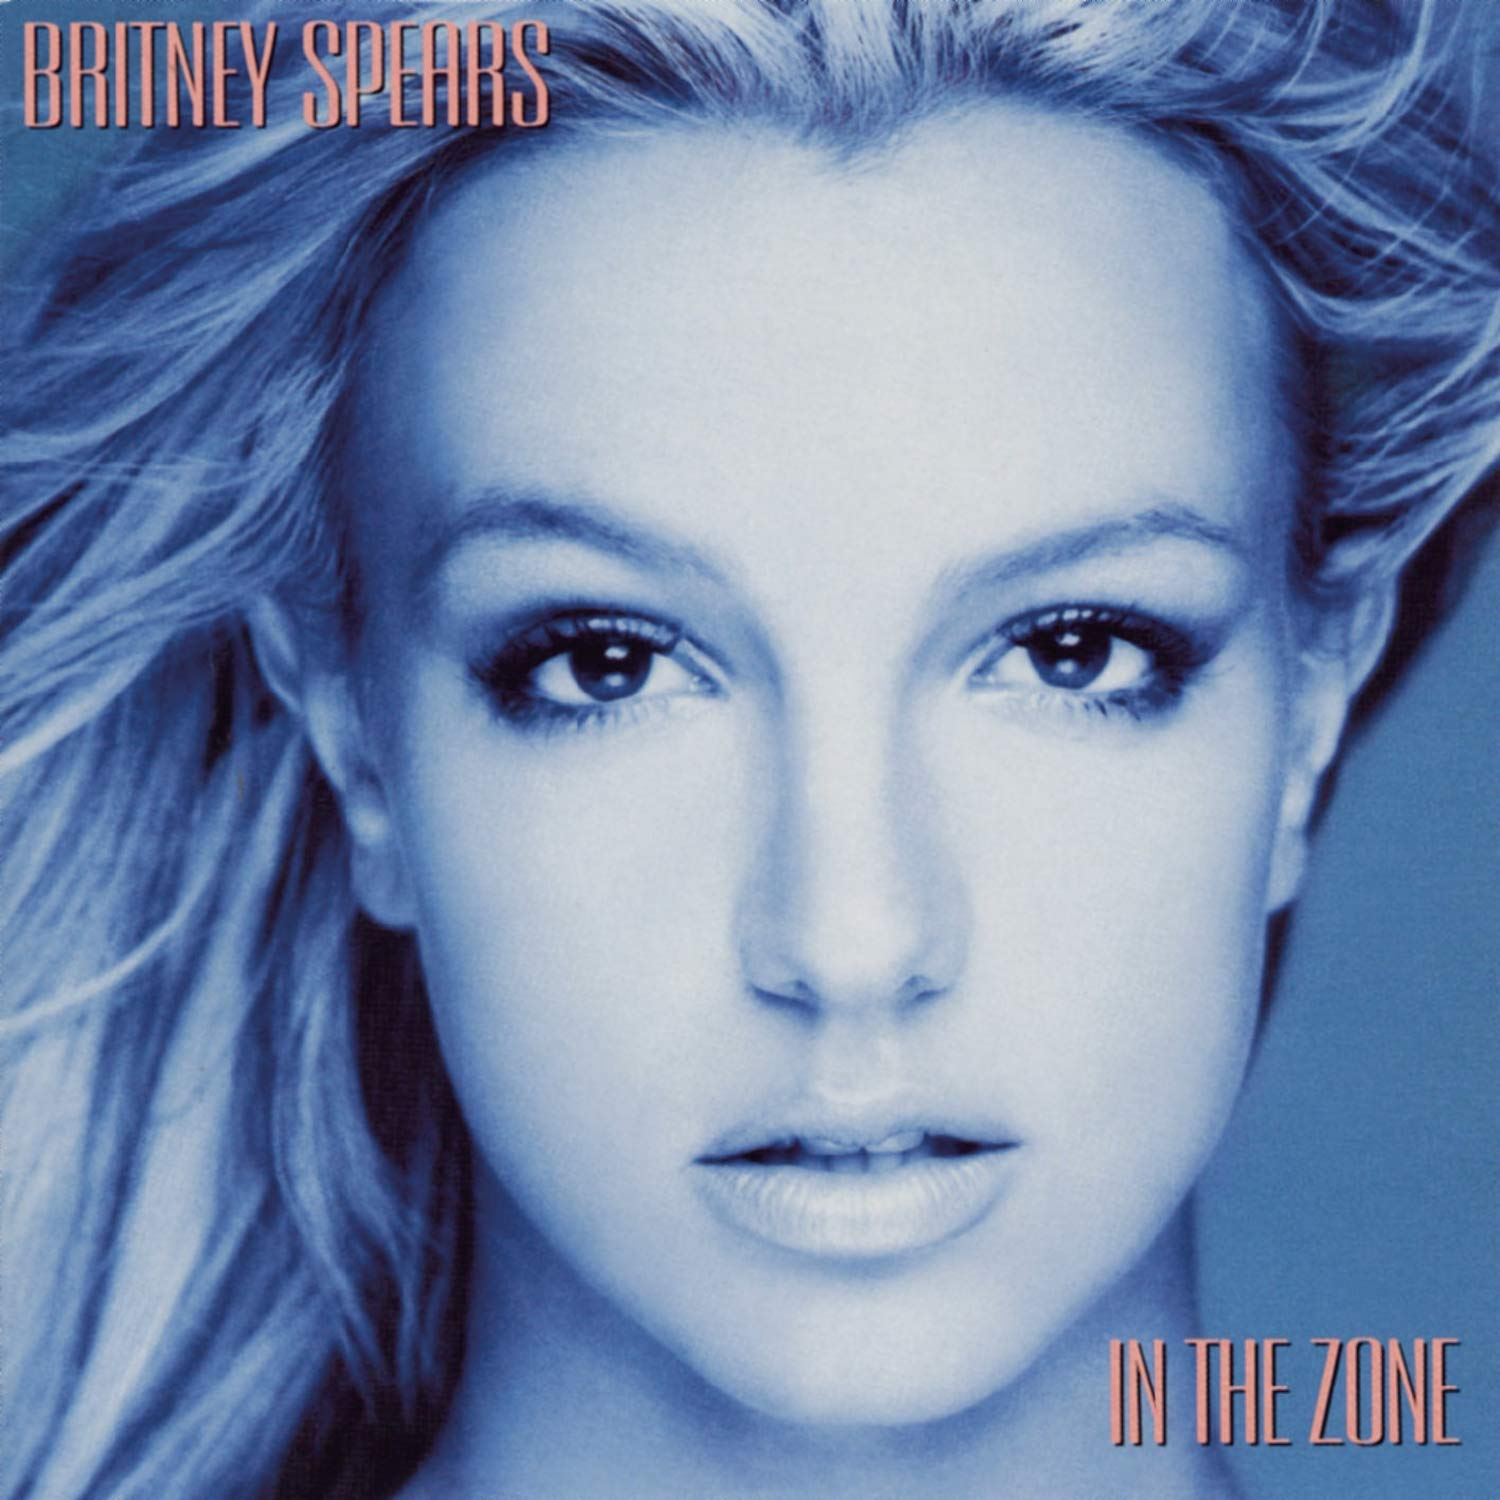 Image result for Britney Spears In the zone album cover